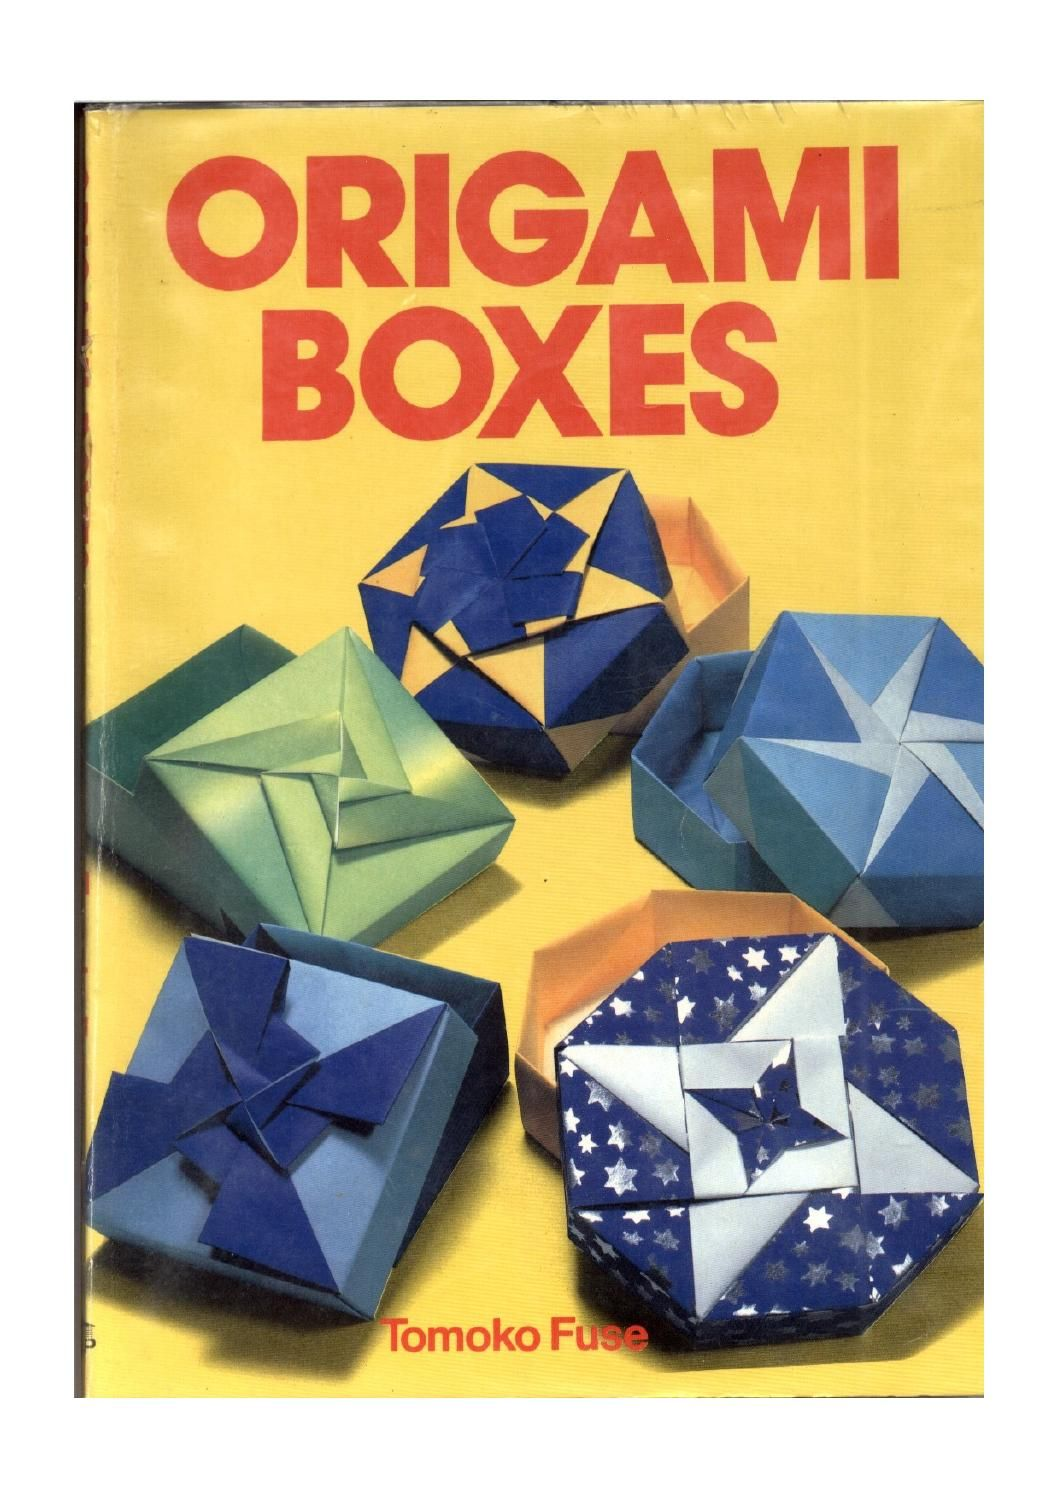 origami boxes origami boxes square boxes octagon boxes triangle boxes and hexagon boxes with pinwheel flower and star pattern for lids [ 1060 x 1497 Pixel ]